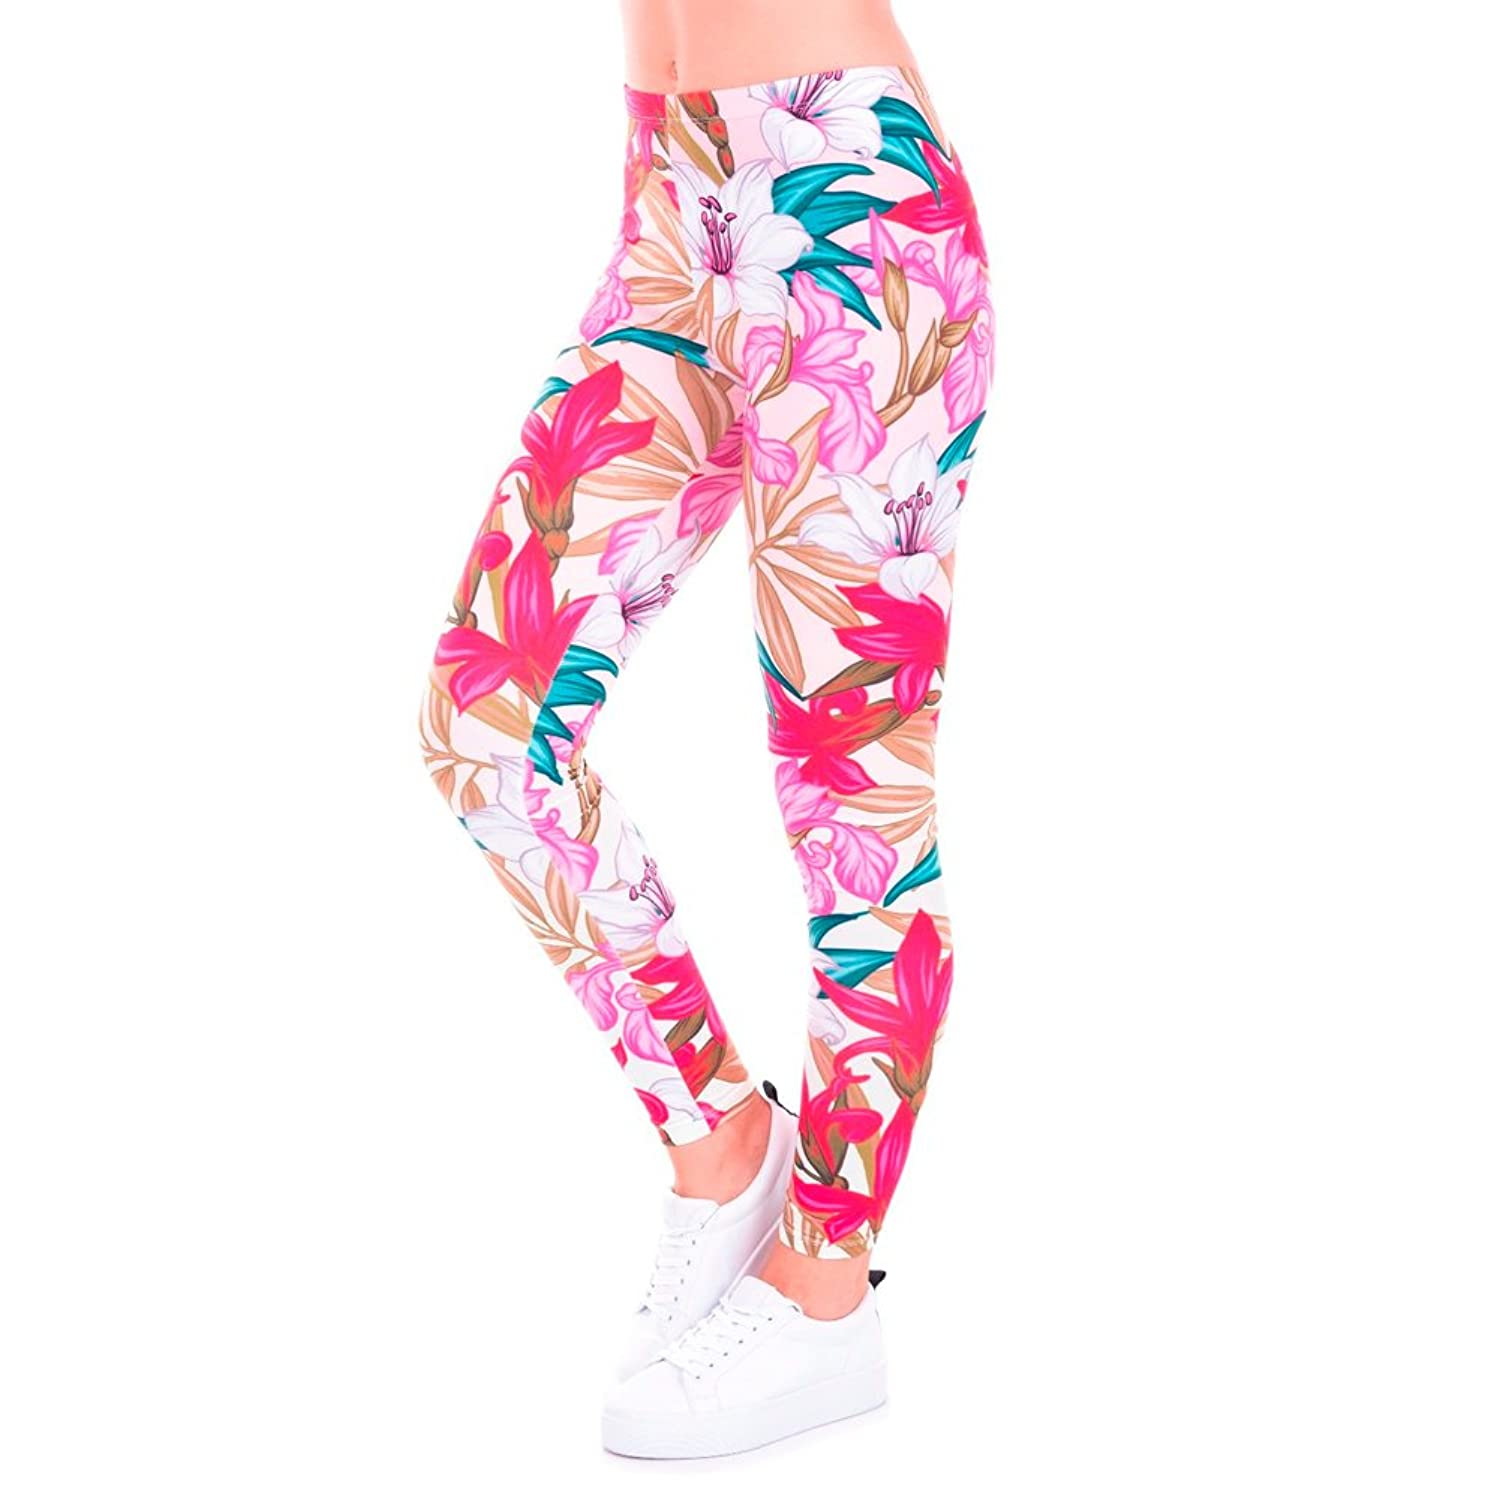 5571e36e731a IDSK Sexy Galaxy Floral PARADISE FLOWERS Printed Leggings for Women 60%OFF